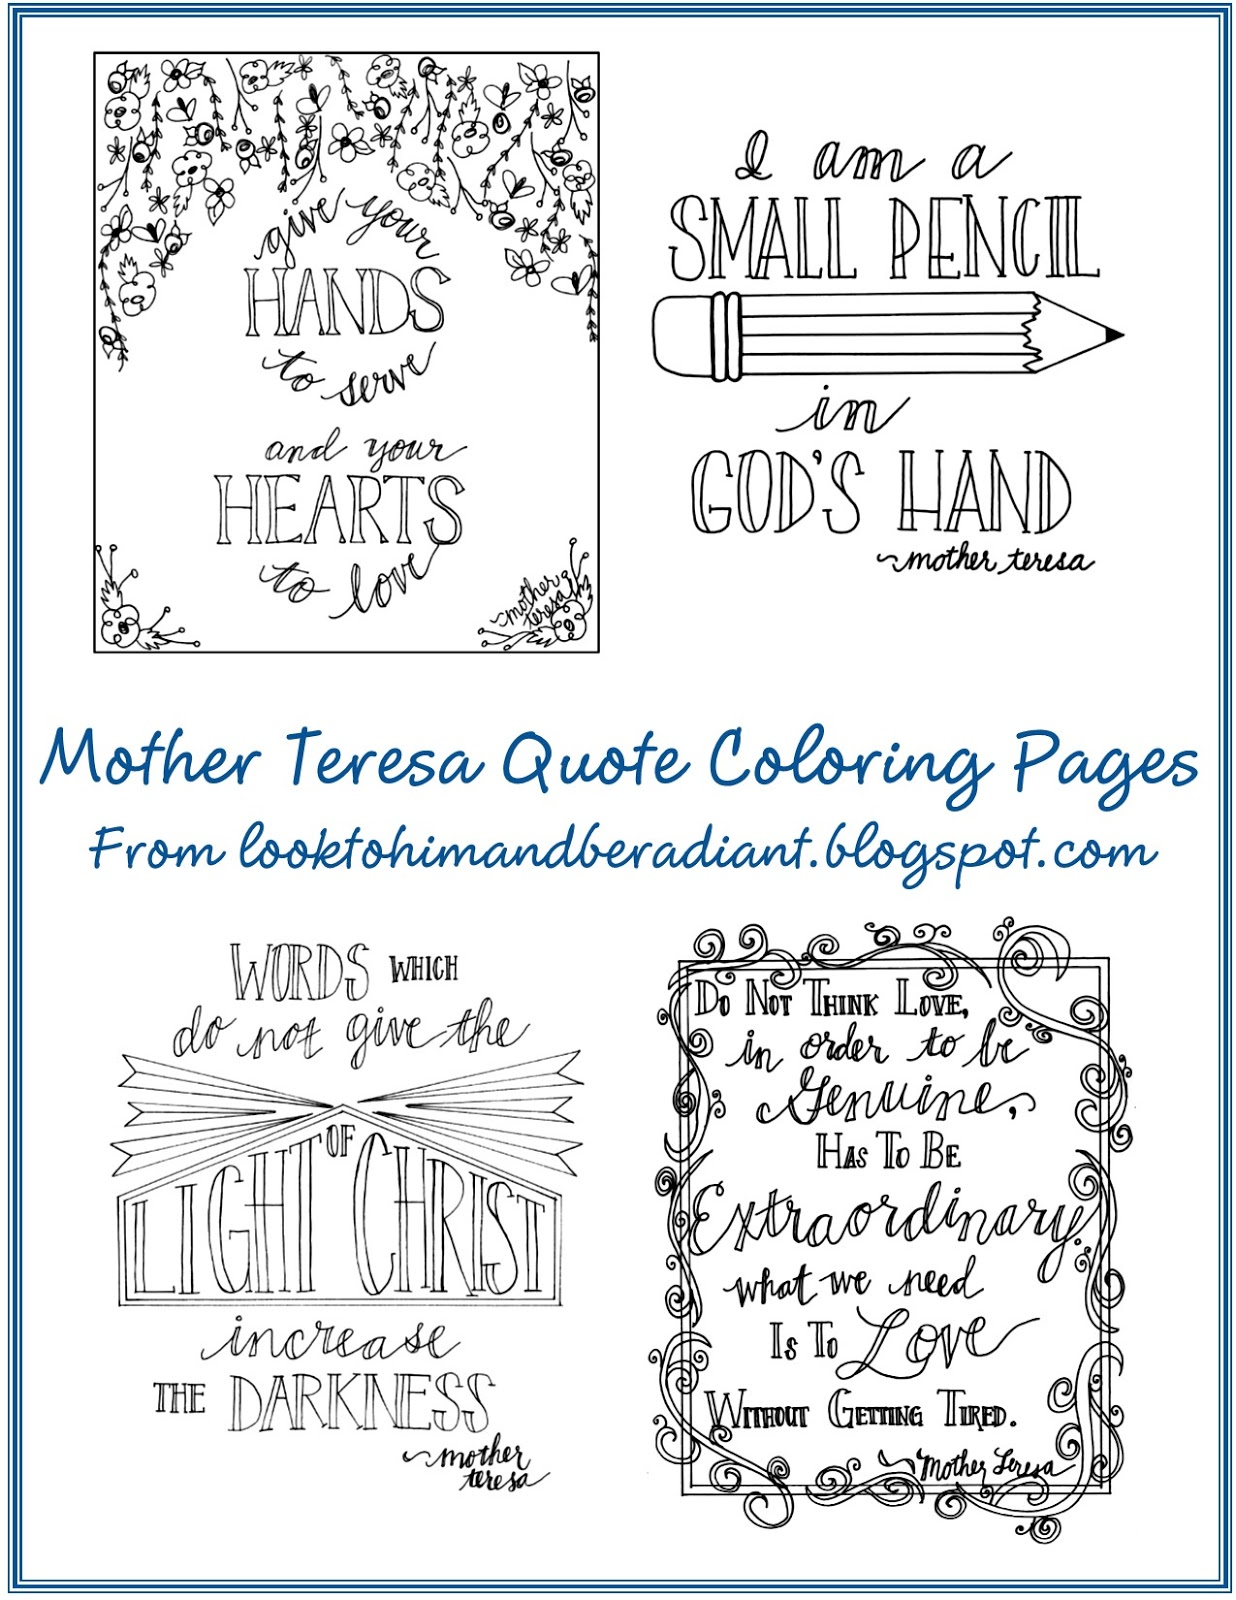 mother teresa quote coloring pages